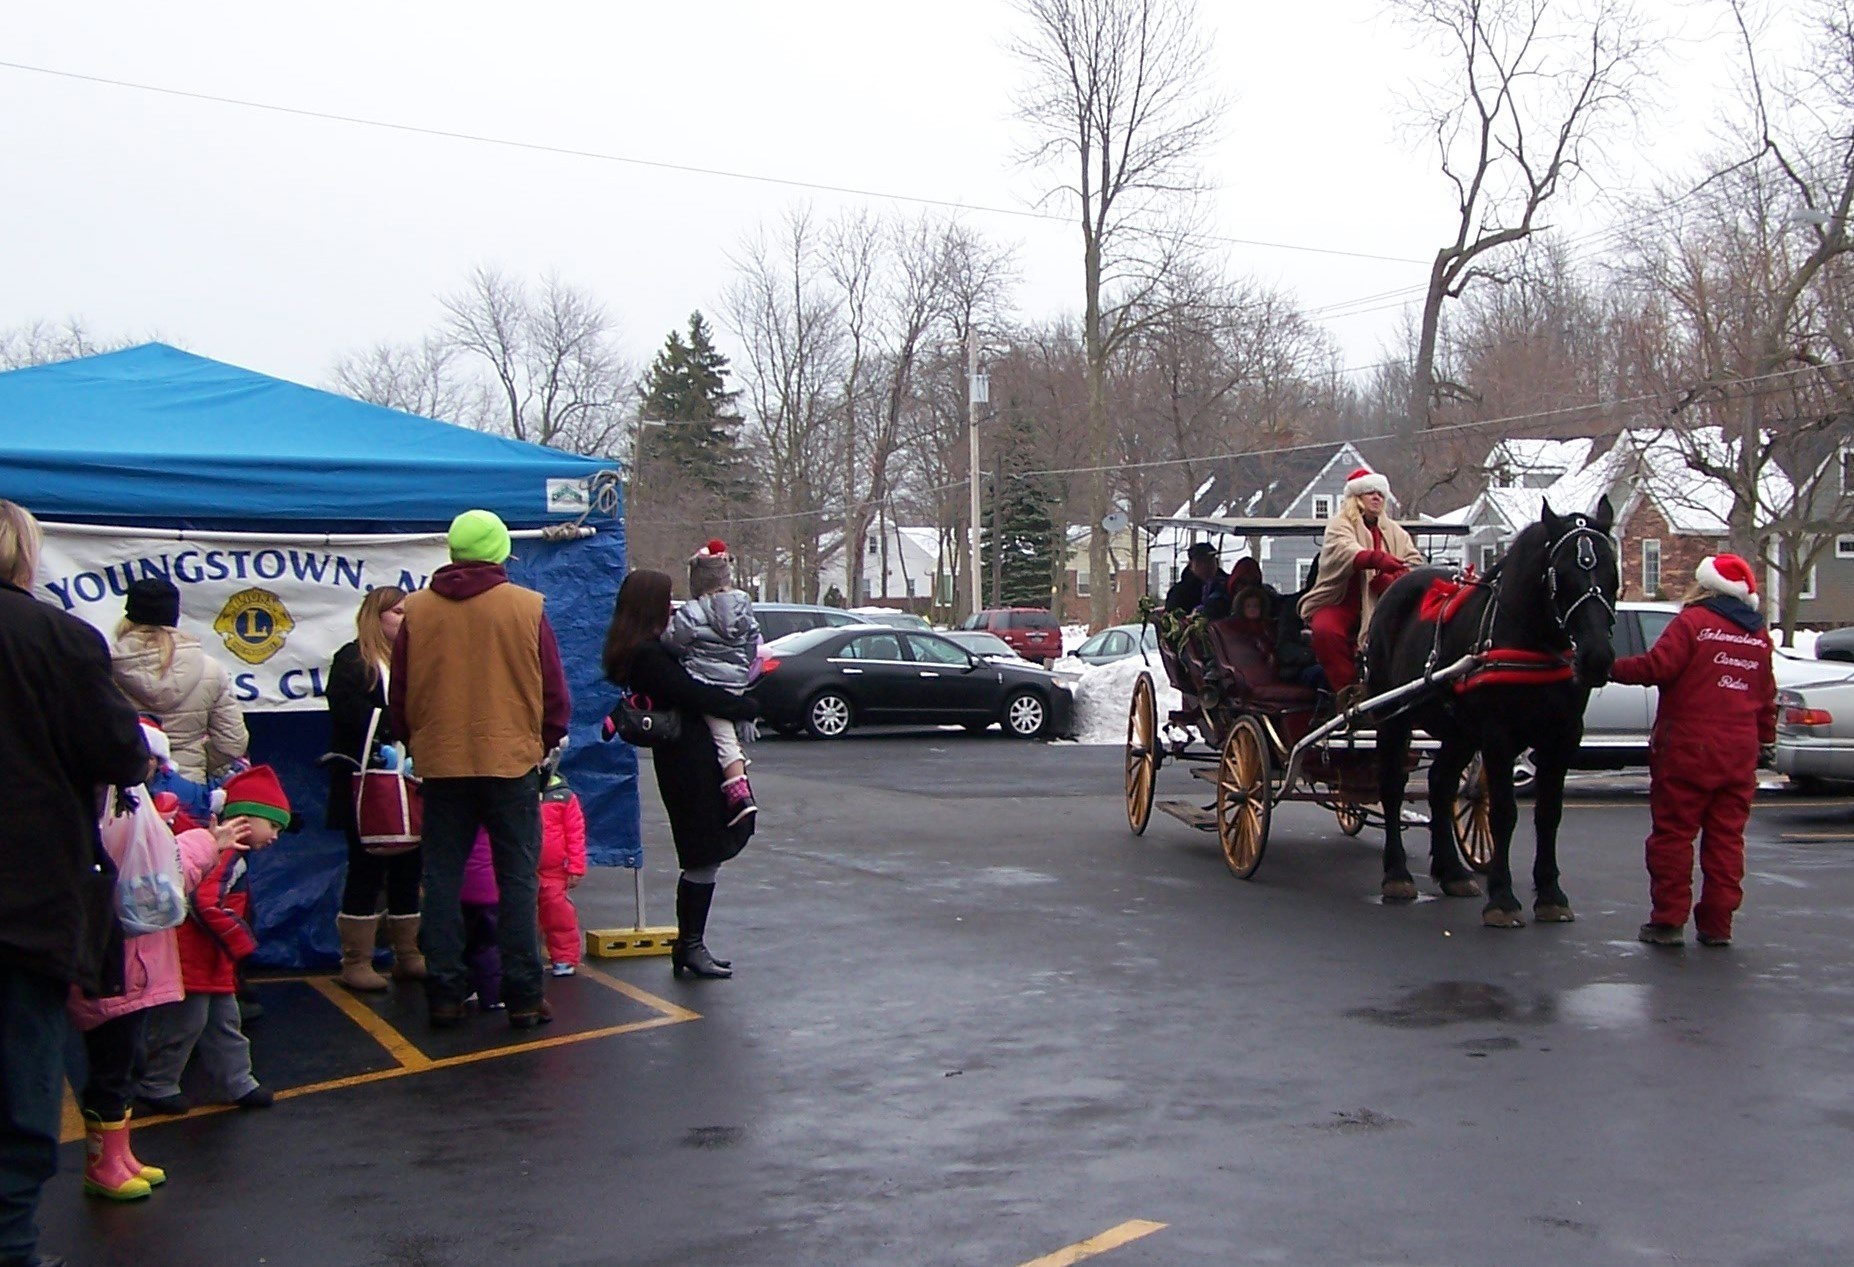 Youngstown's holiday celebration, scheduled from 10 a.m. to 4 p.m. Saturday, will feature festive activities for people of all ages.